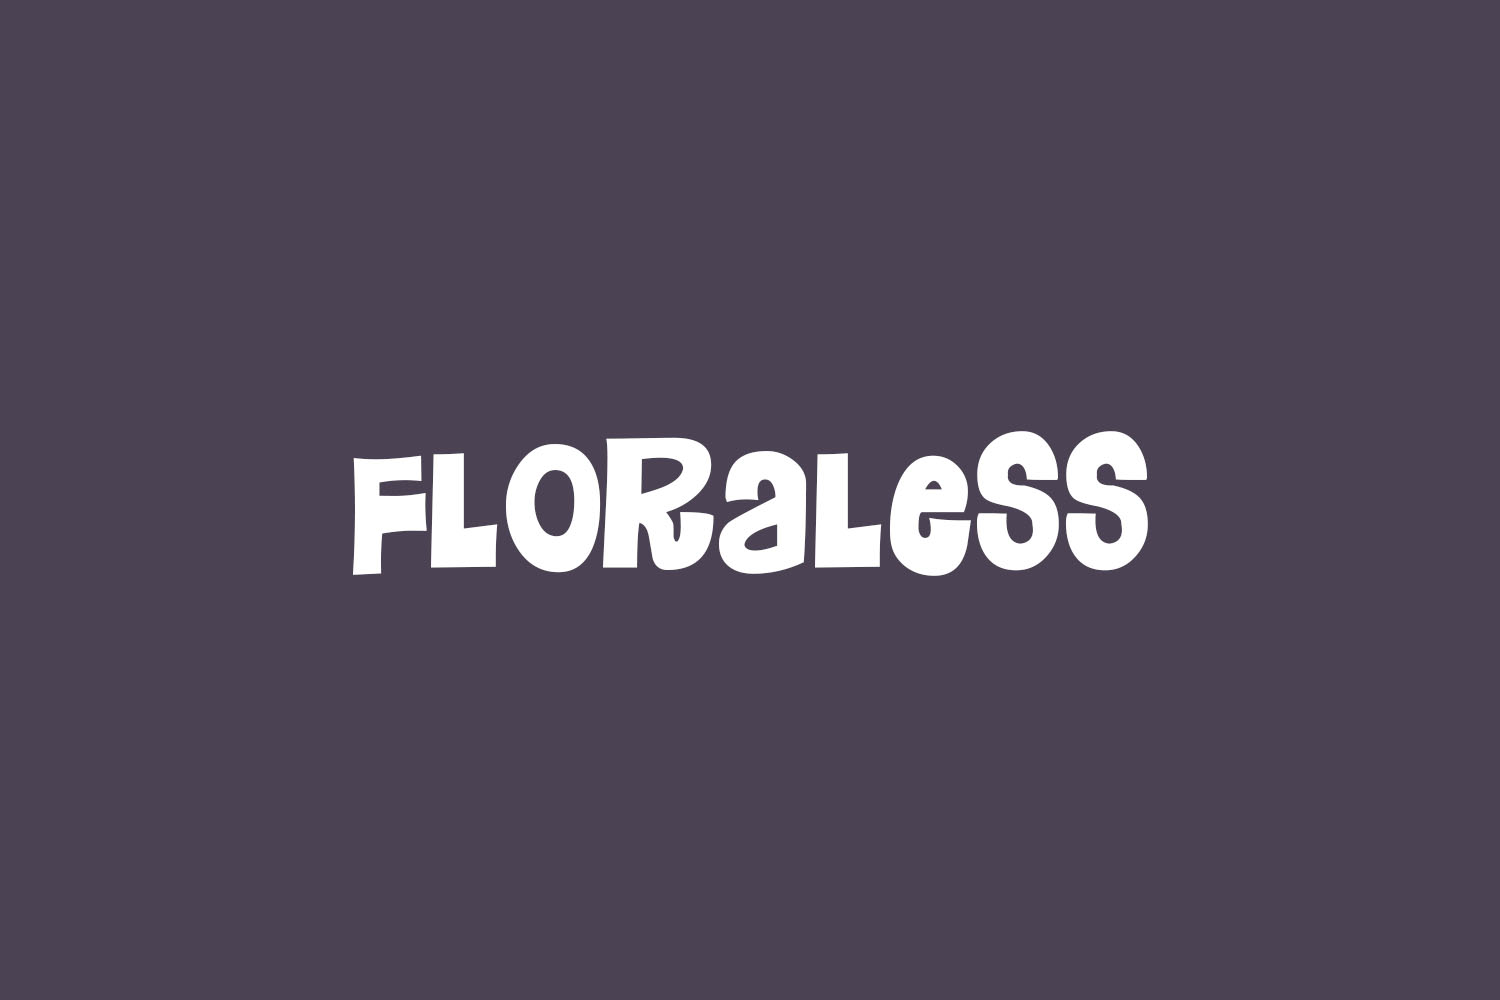 Floraless Free Font